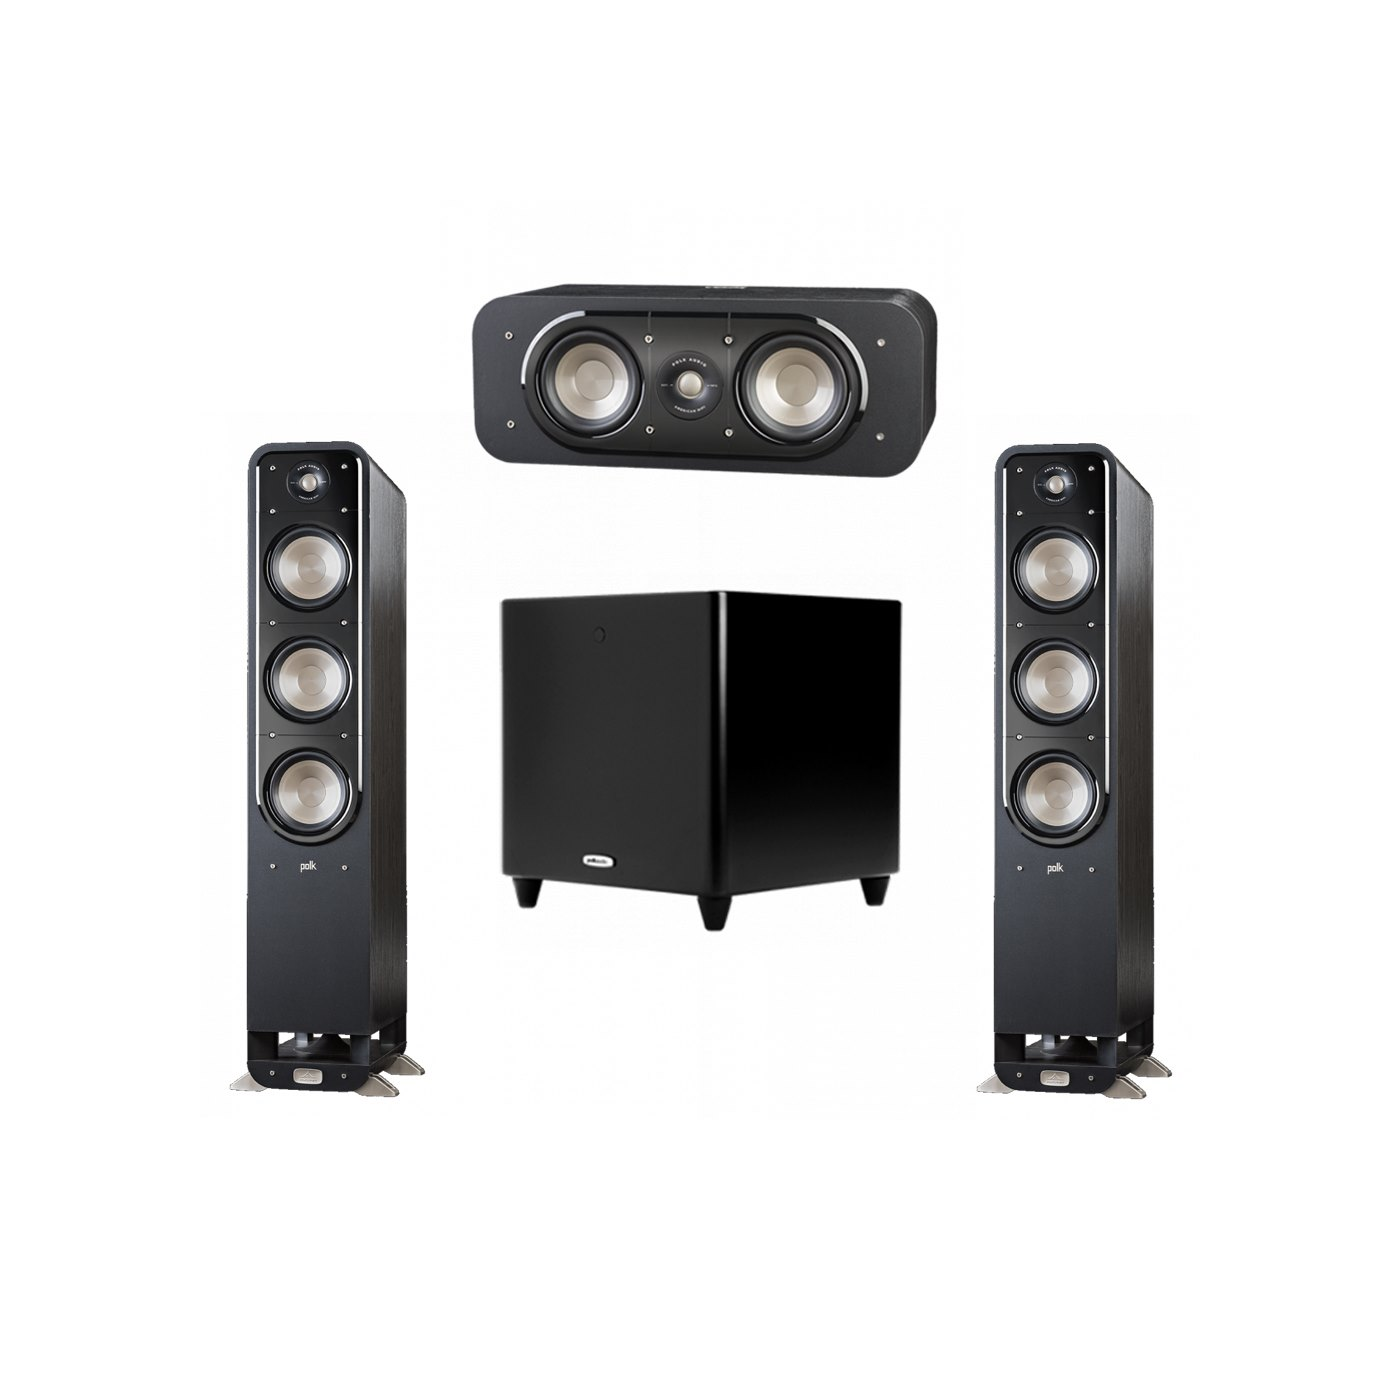 Polk Audio Signature 3.1 System with 2 S60 Tower Speaker, 1 Polk S30 Center Speaker, 1 Polk DSW PRO 550 wi Subwoofer